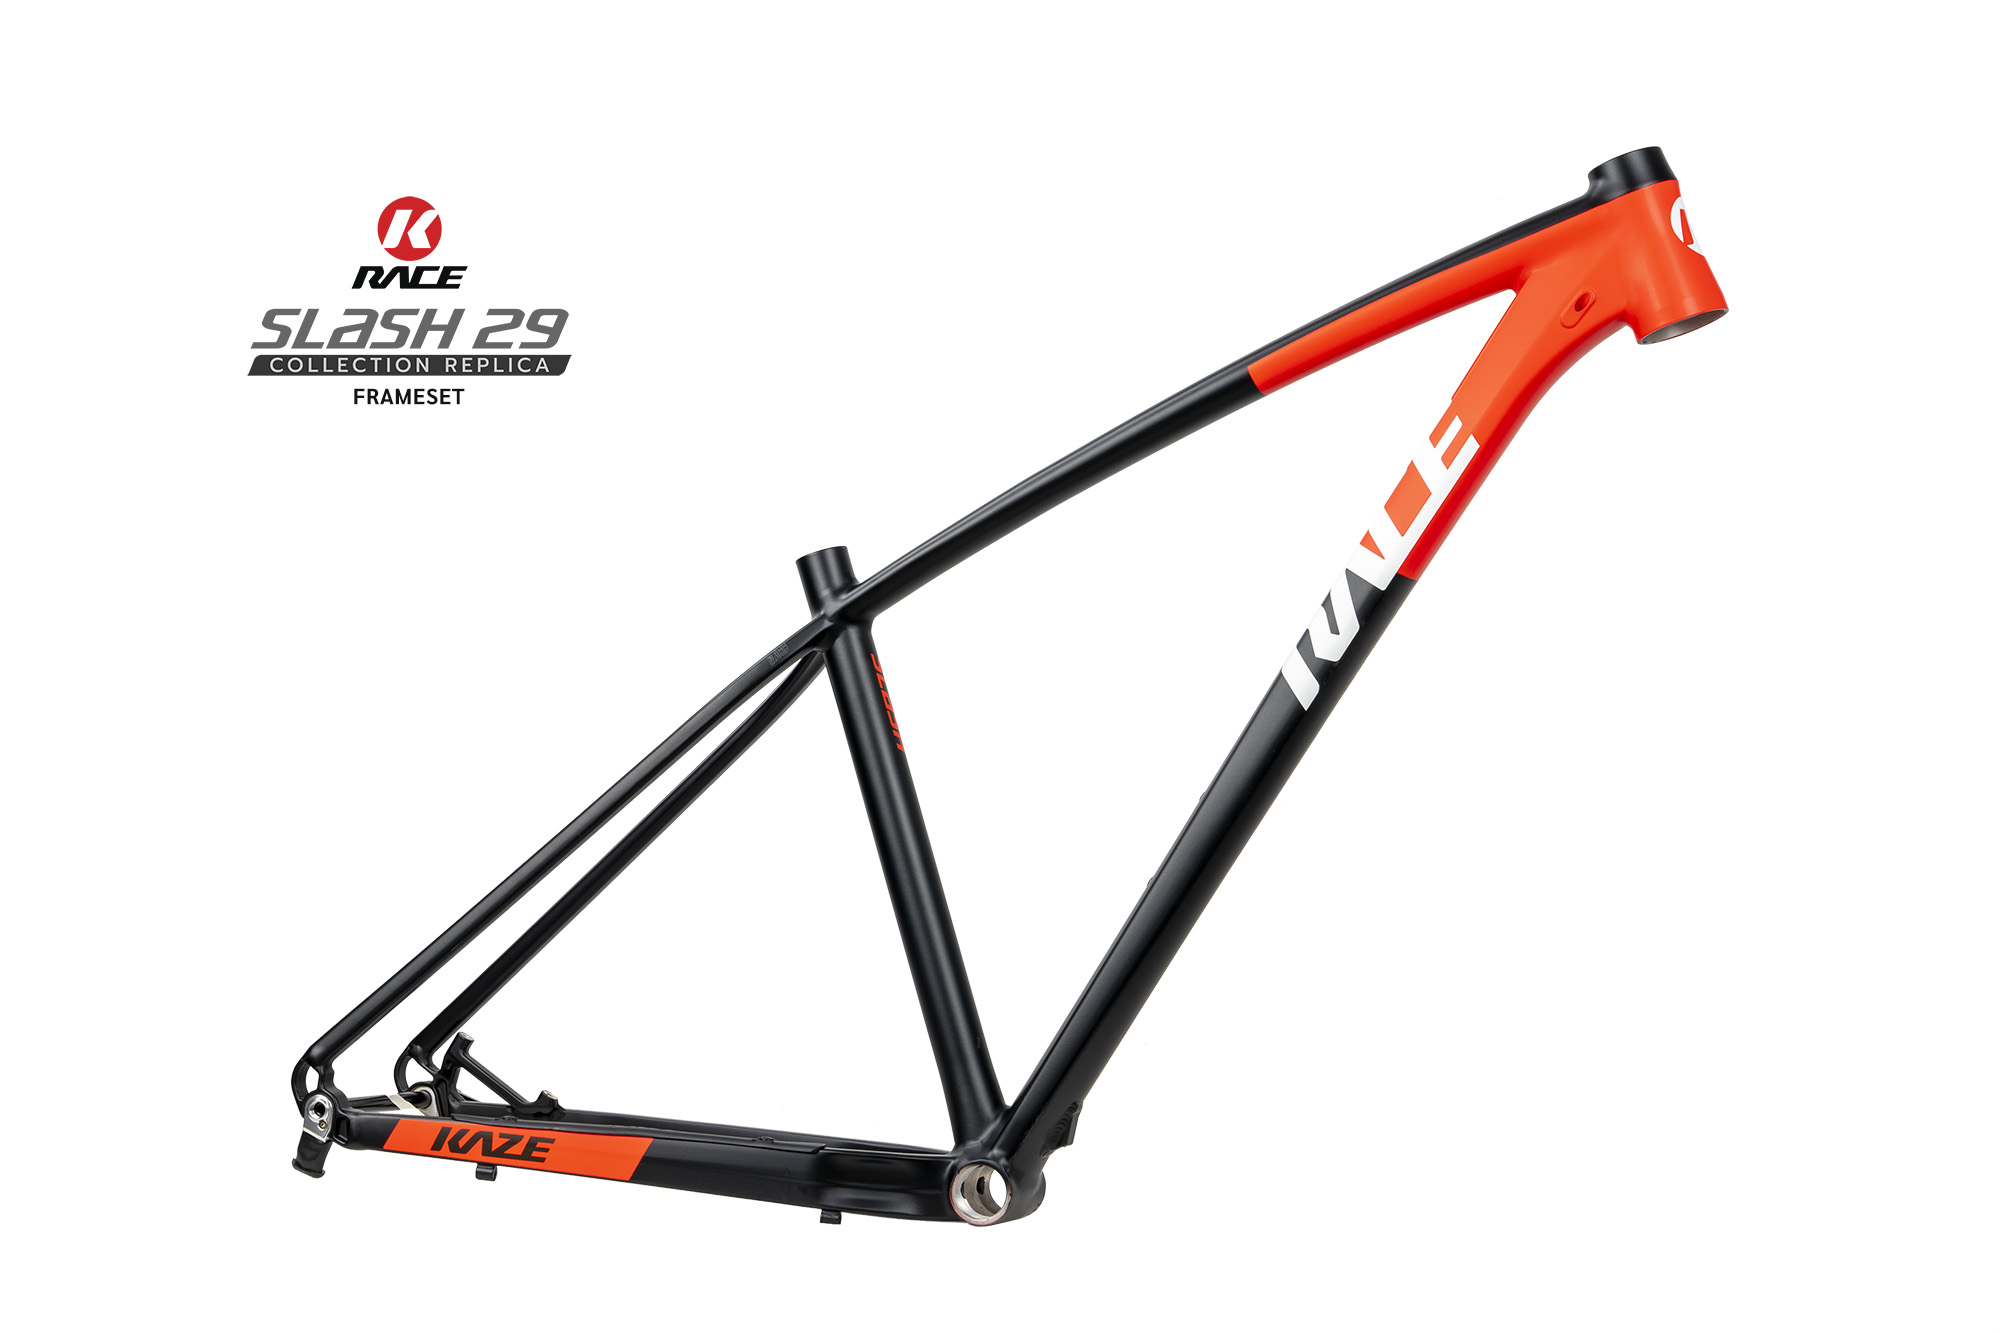 KAZE RACE | Slash 29er Collection Replica (Frame Set)